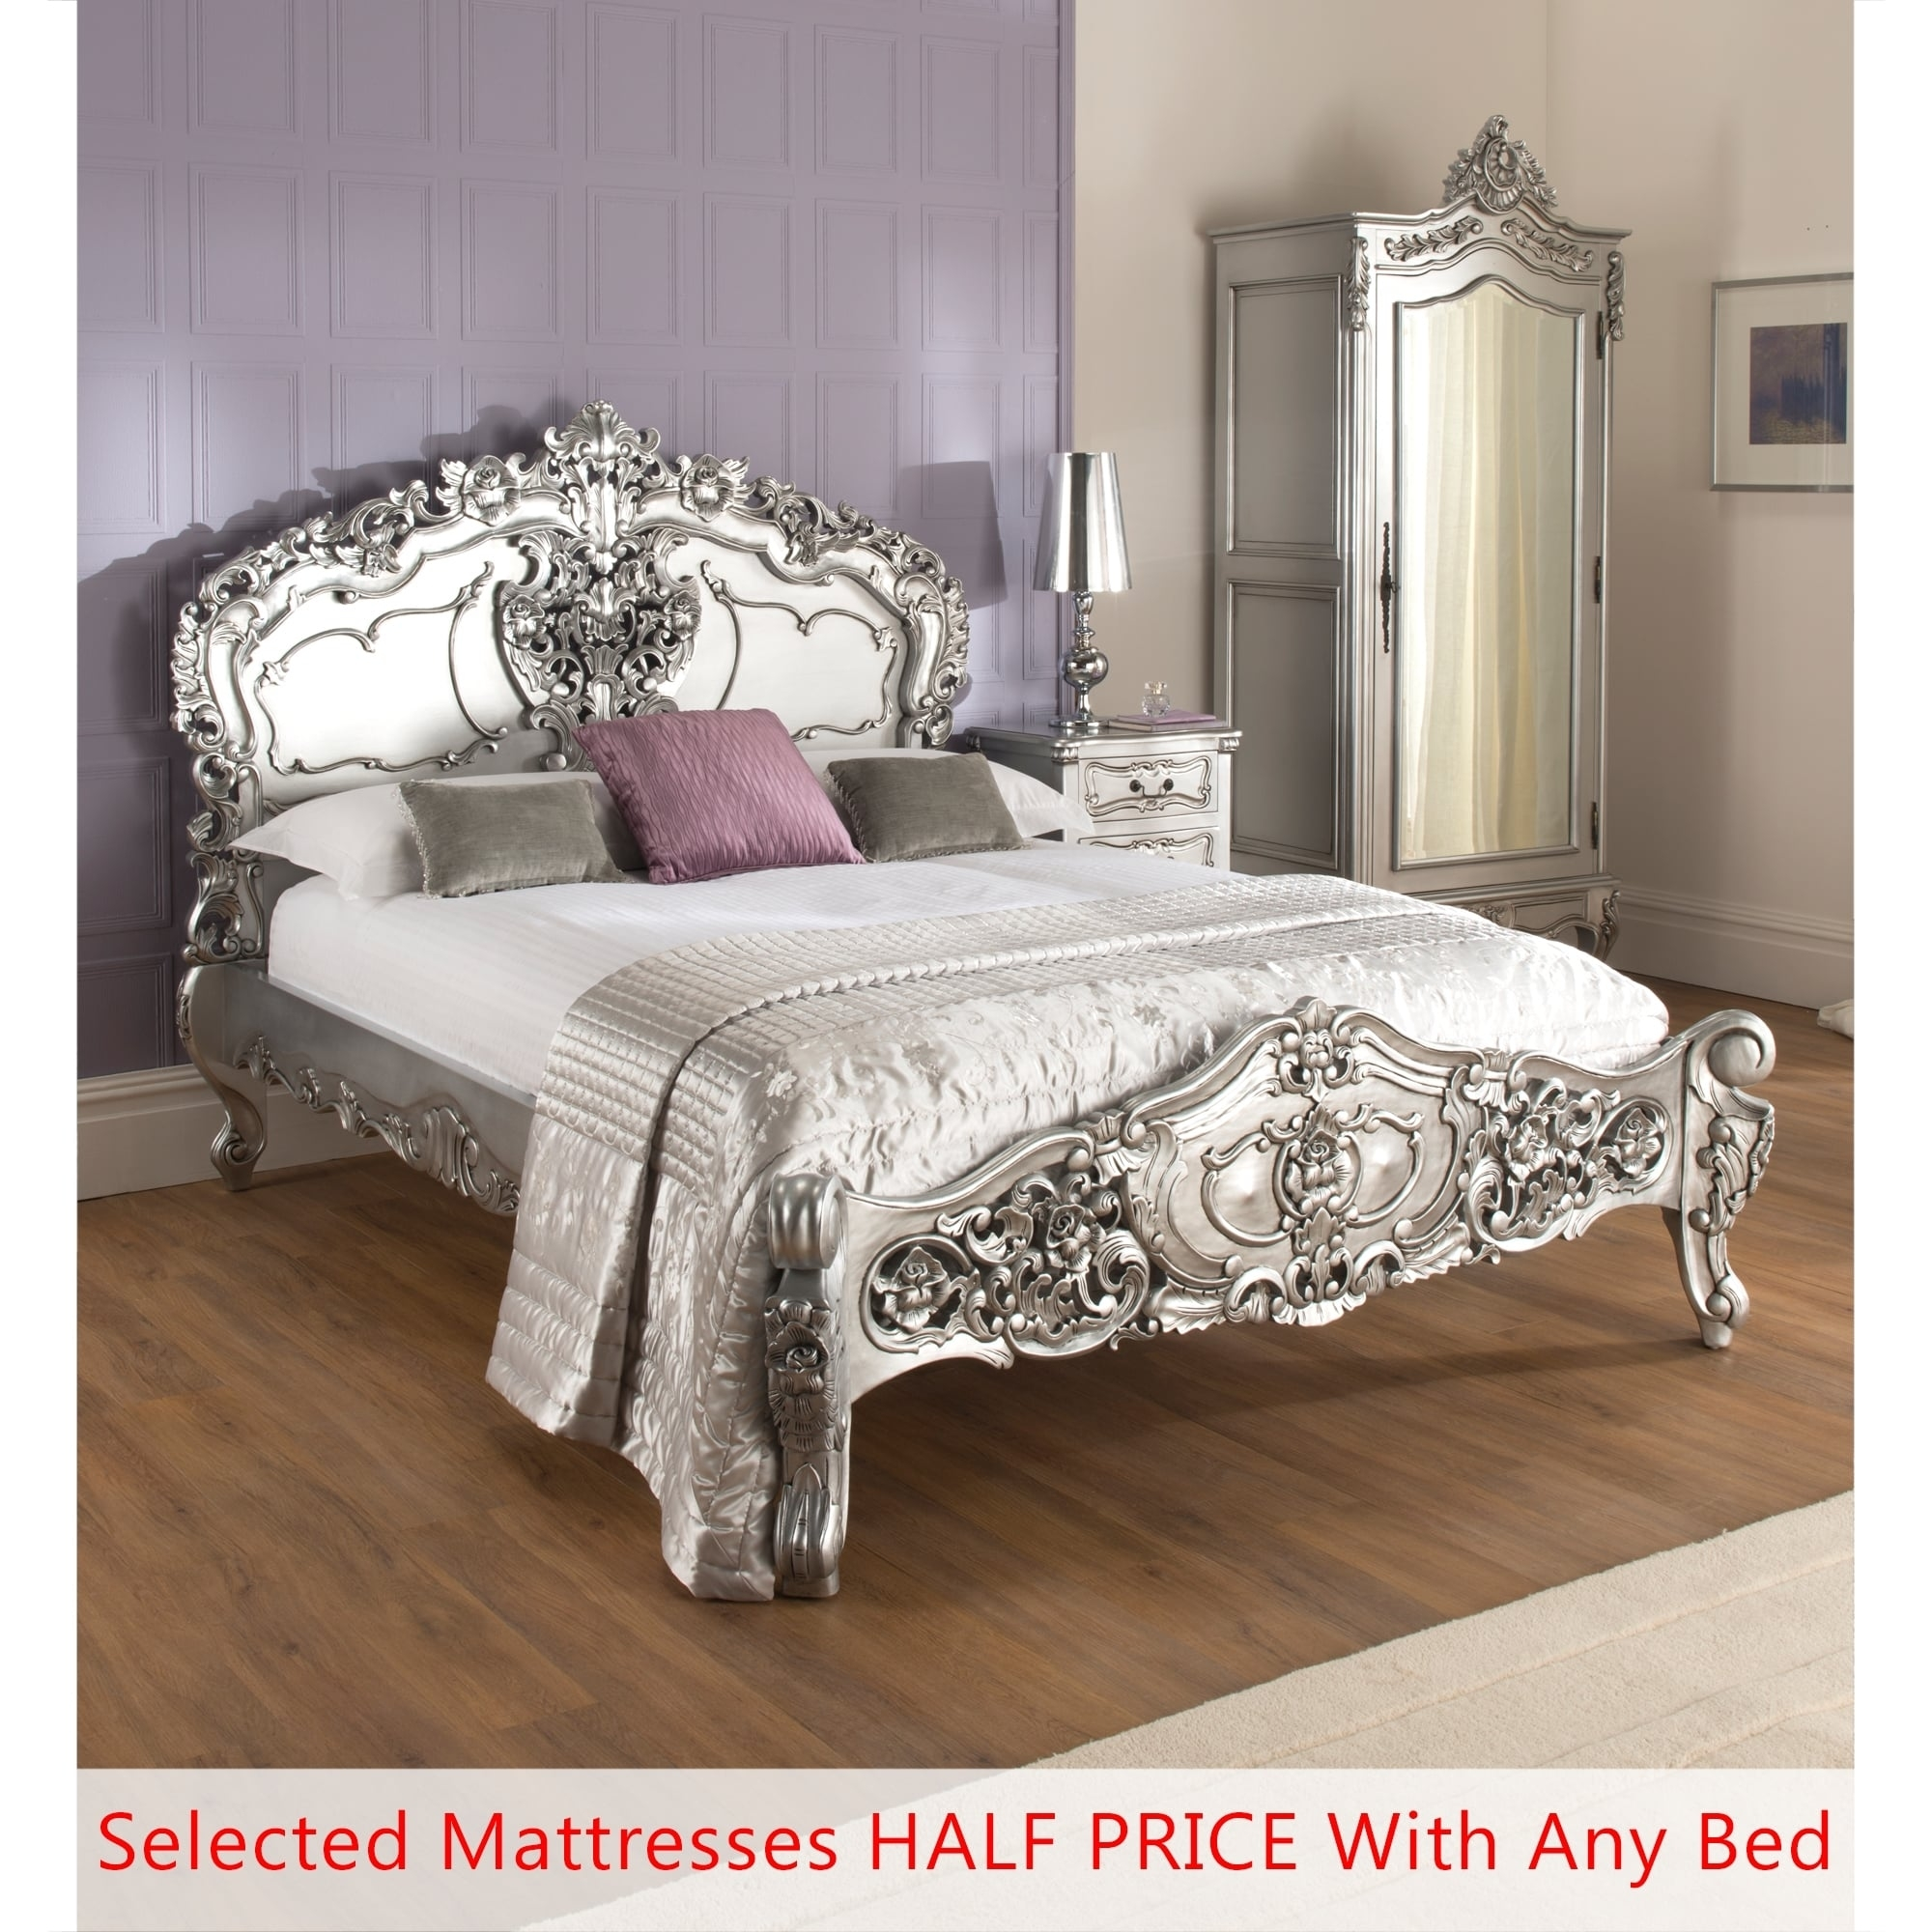 La Rochelle Silver Antique French Style Bed Half Price Mattress